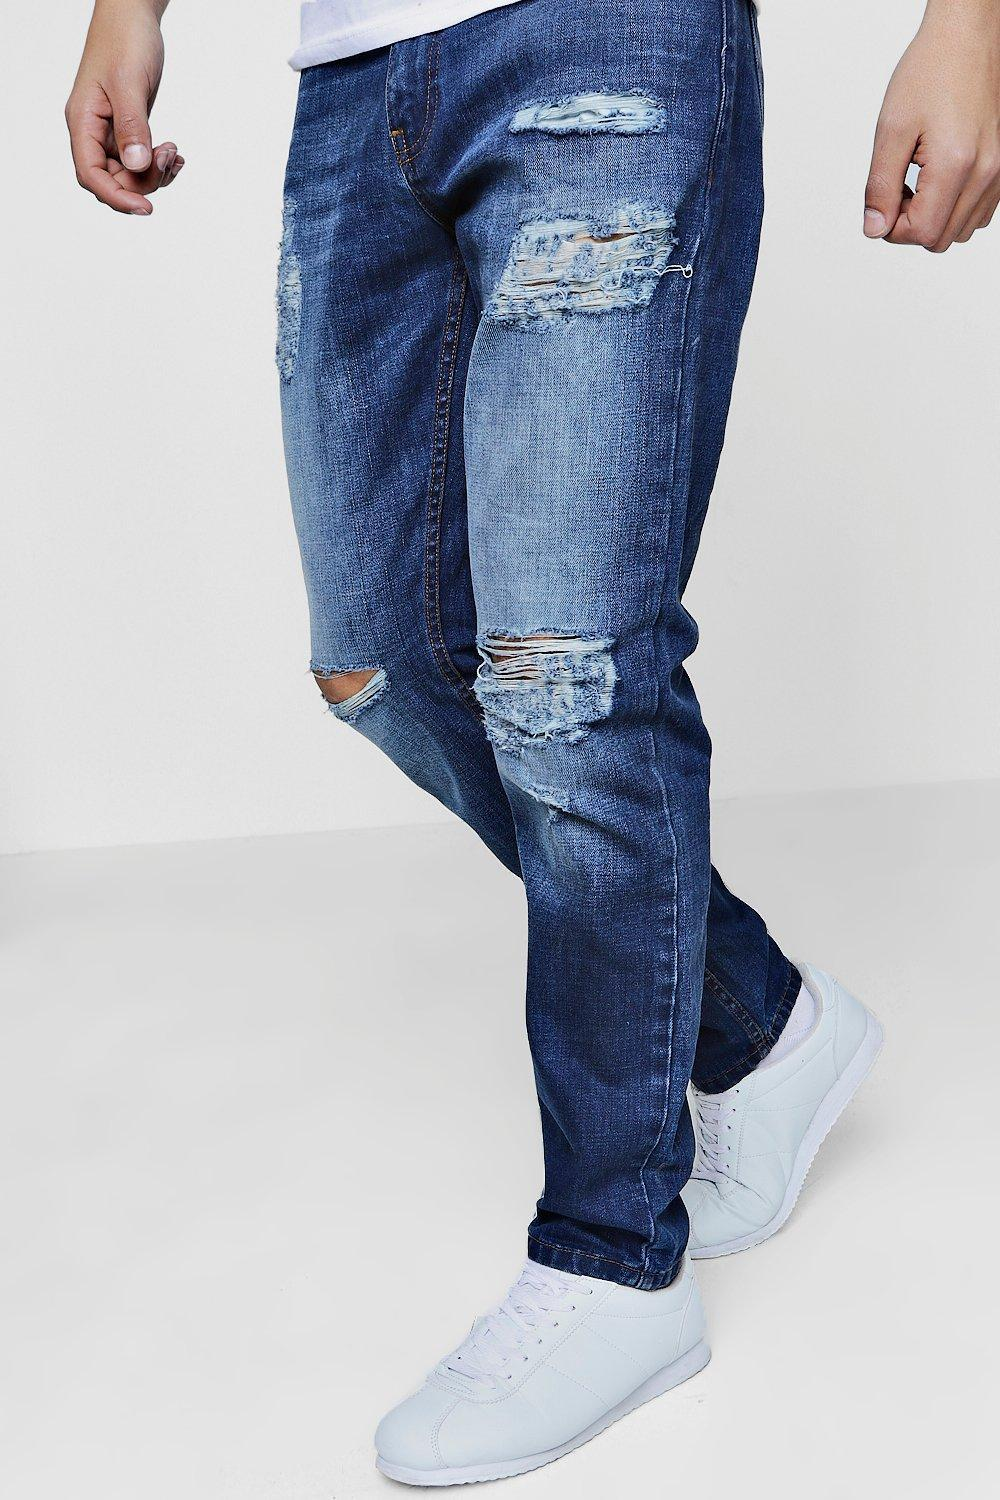 Ripped jeans are one of the hottest and most versatile trends in men's jeans. More and more, guys are discovering that ripped jeans can help them elevate their style. By adding the edgy, urban look that ripped jeans for men provide, guys can easily breathe new life into their entire wardrobe.